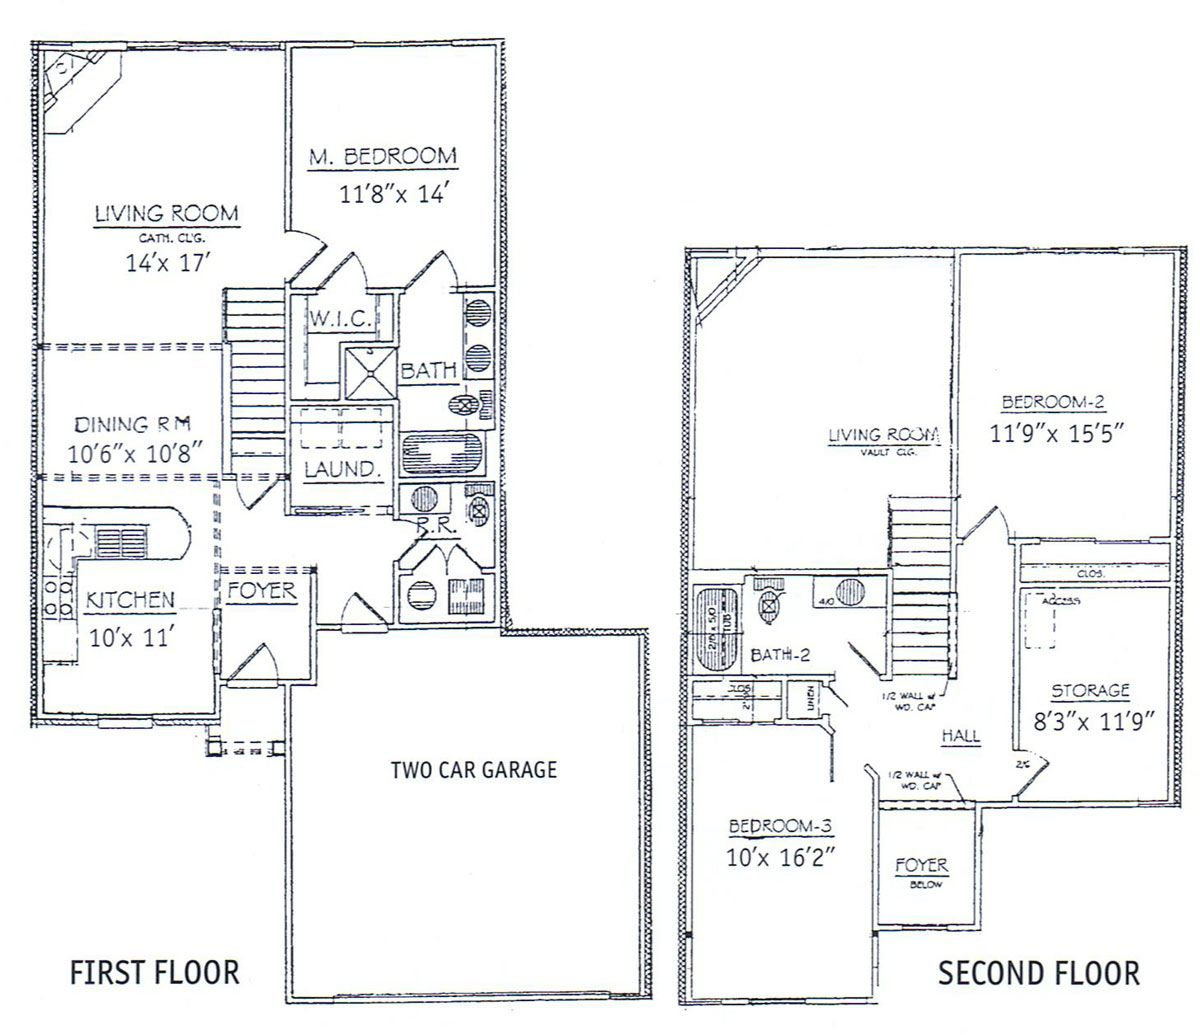 3 bedrooms floor plans 2 story bdrm basement the two for 2 story 3 bedroom house plans